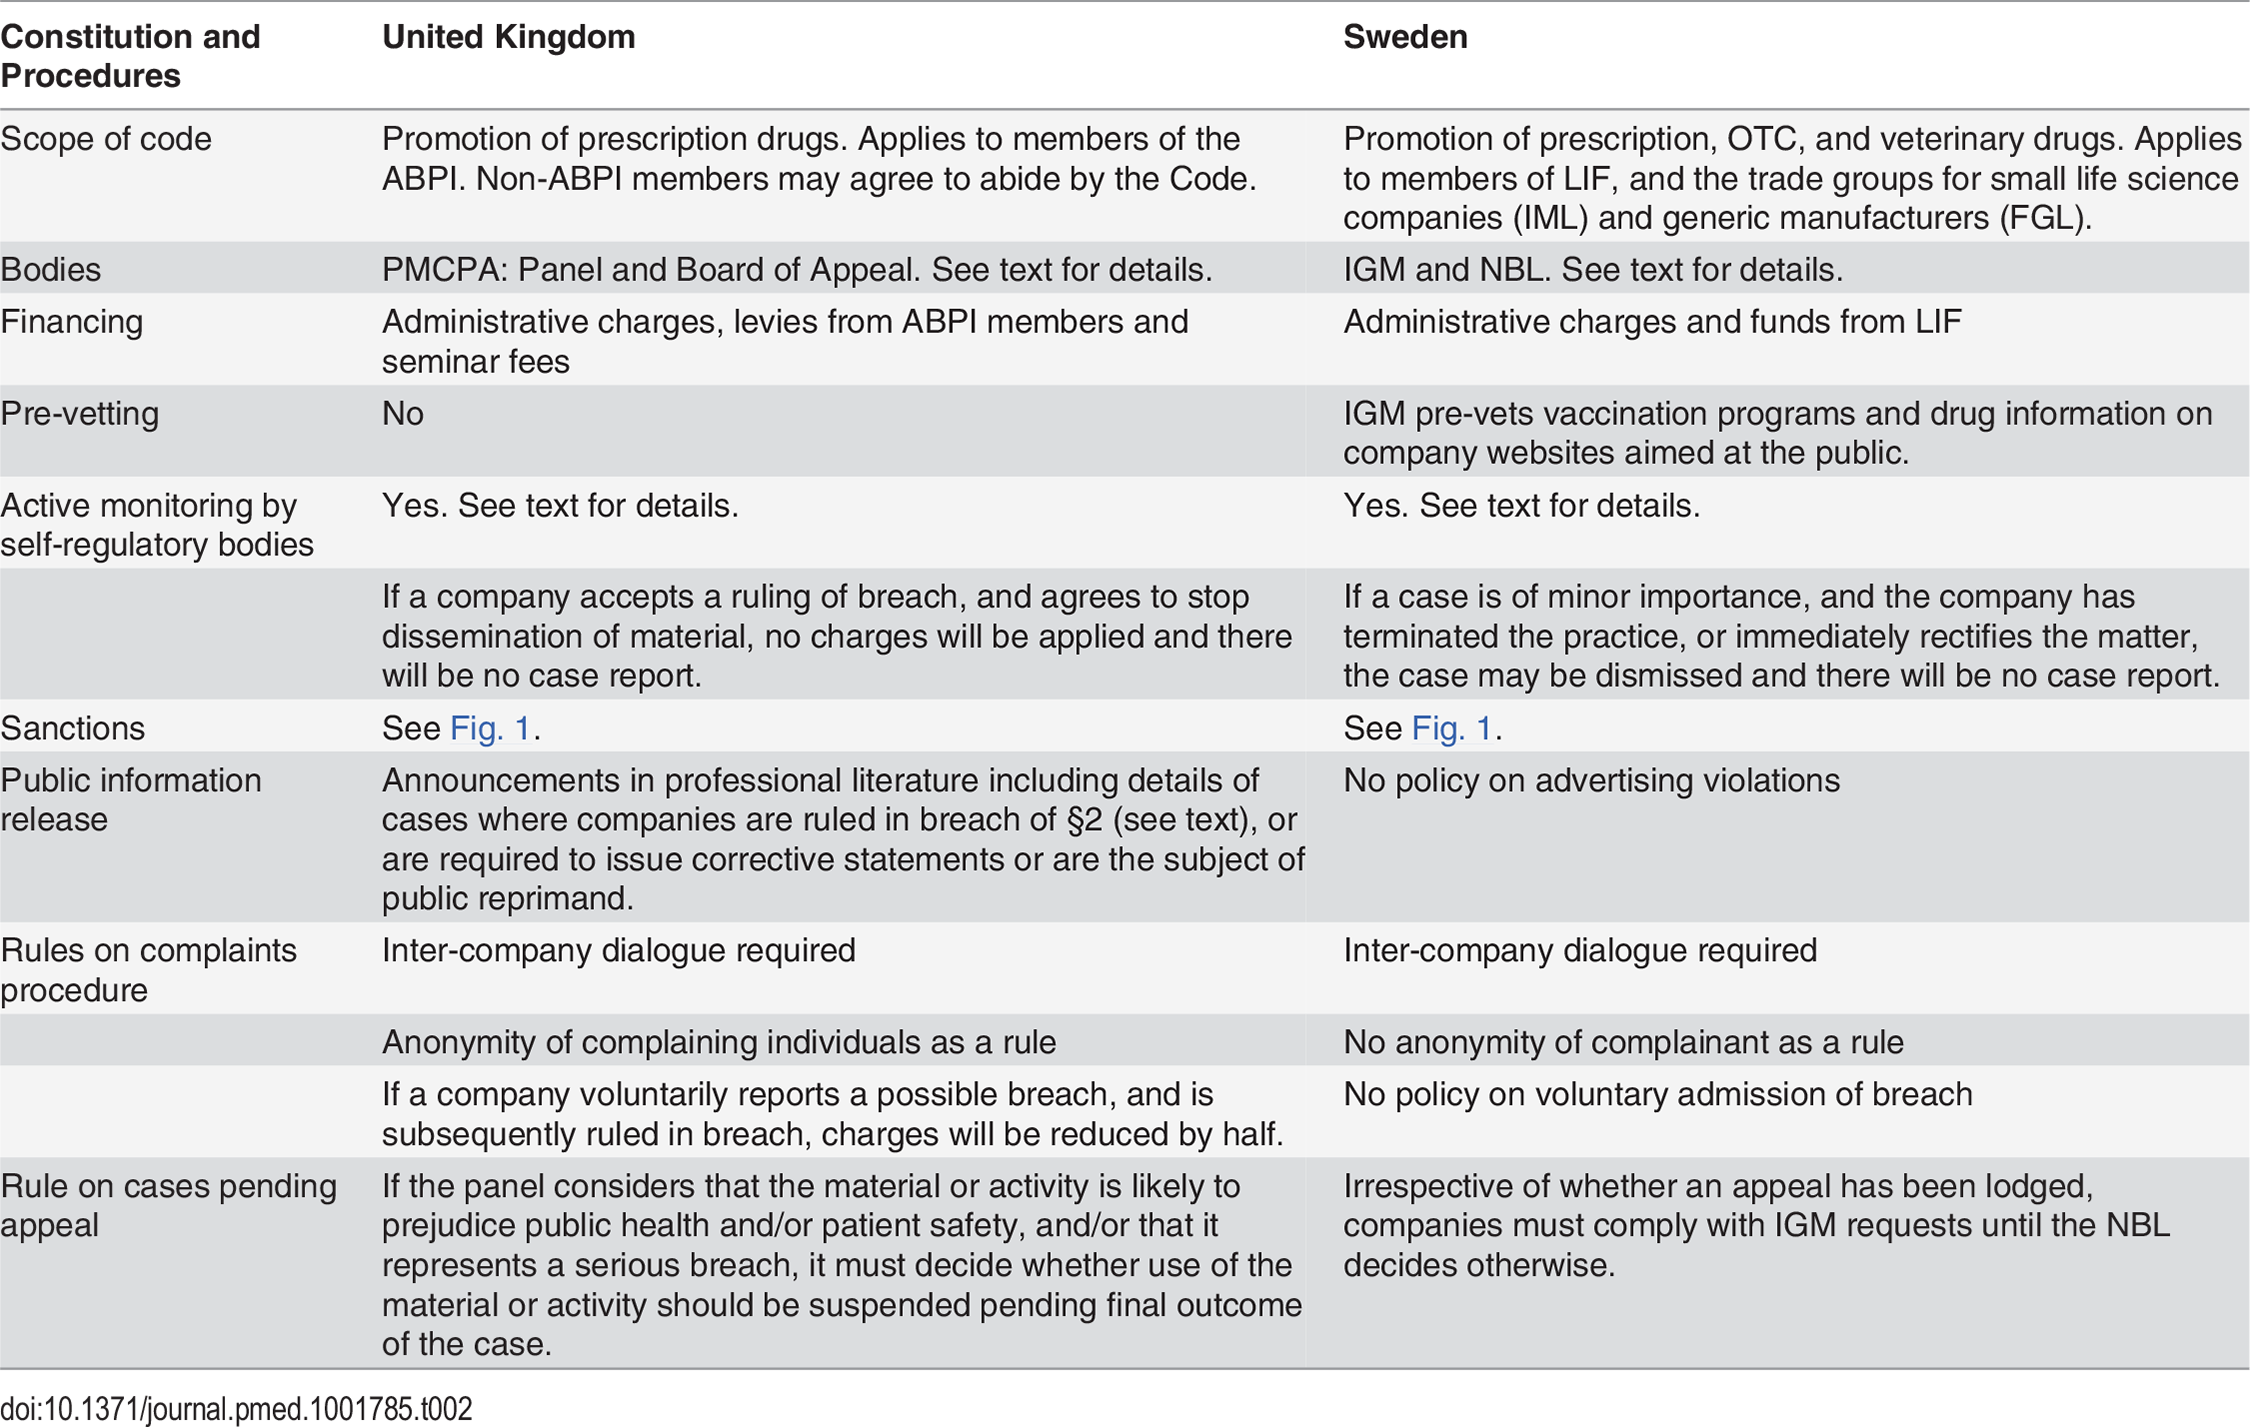 Constitution and procedures of self-regulation in the UK and Sweden.